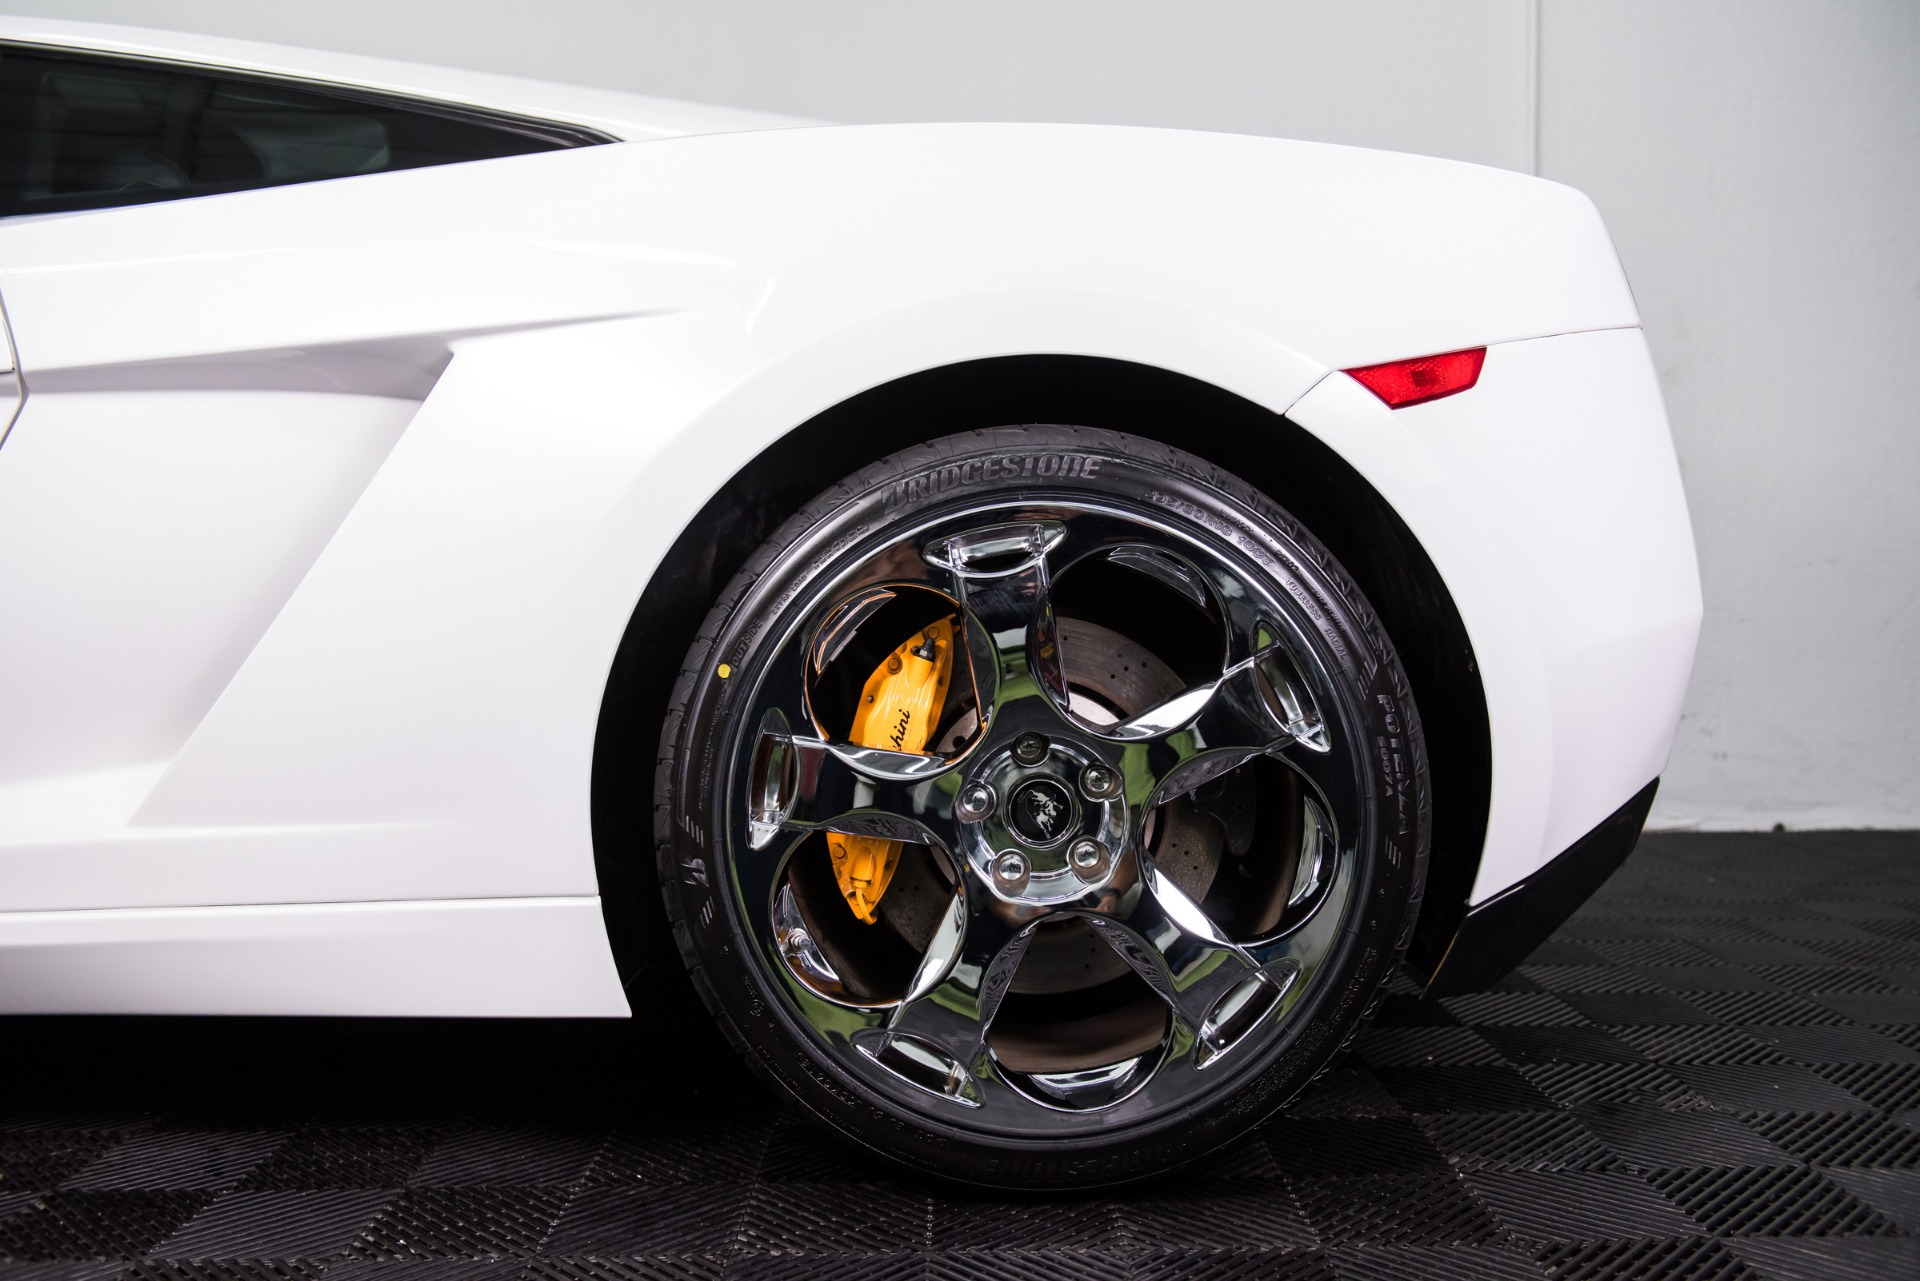 Used 2004 Lamborghini Gallardo Used 2004 Lamborghini Gallardo for sale Sold at Response Motors in Mountain View CA 11